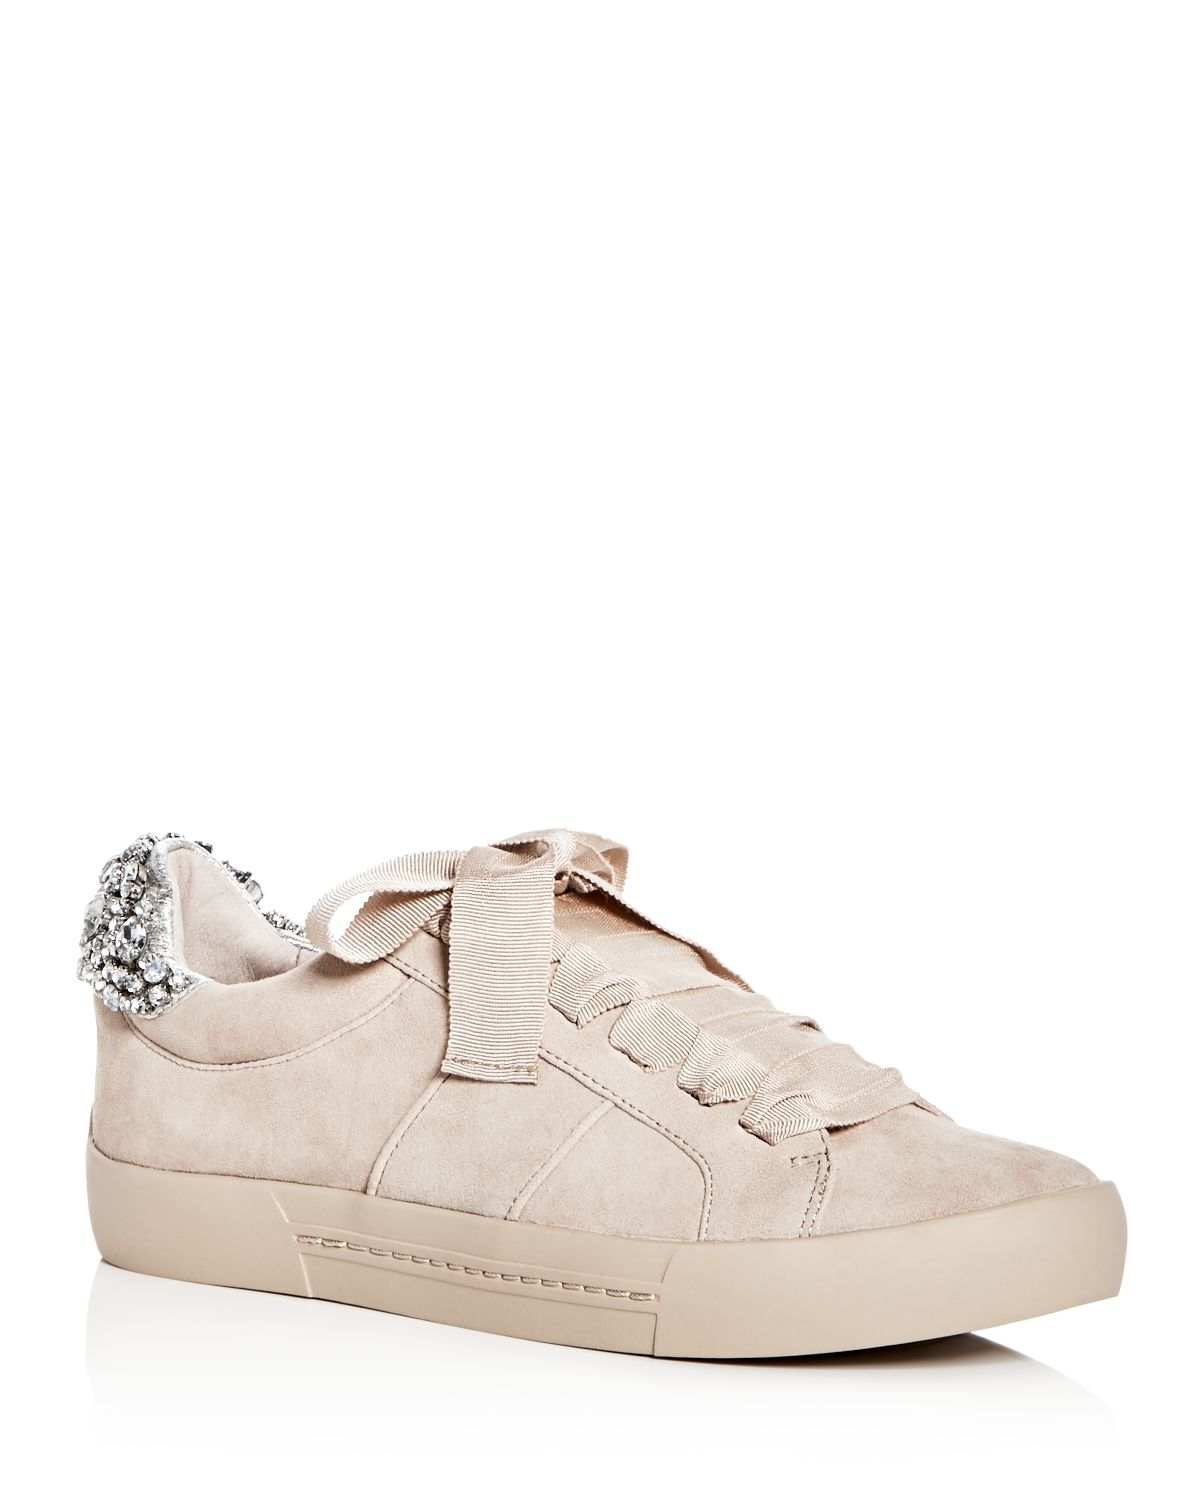 Joie Women's Darena Embellished Suede Lace Up Sneakers